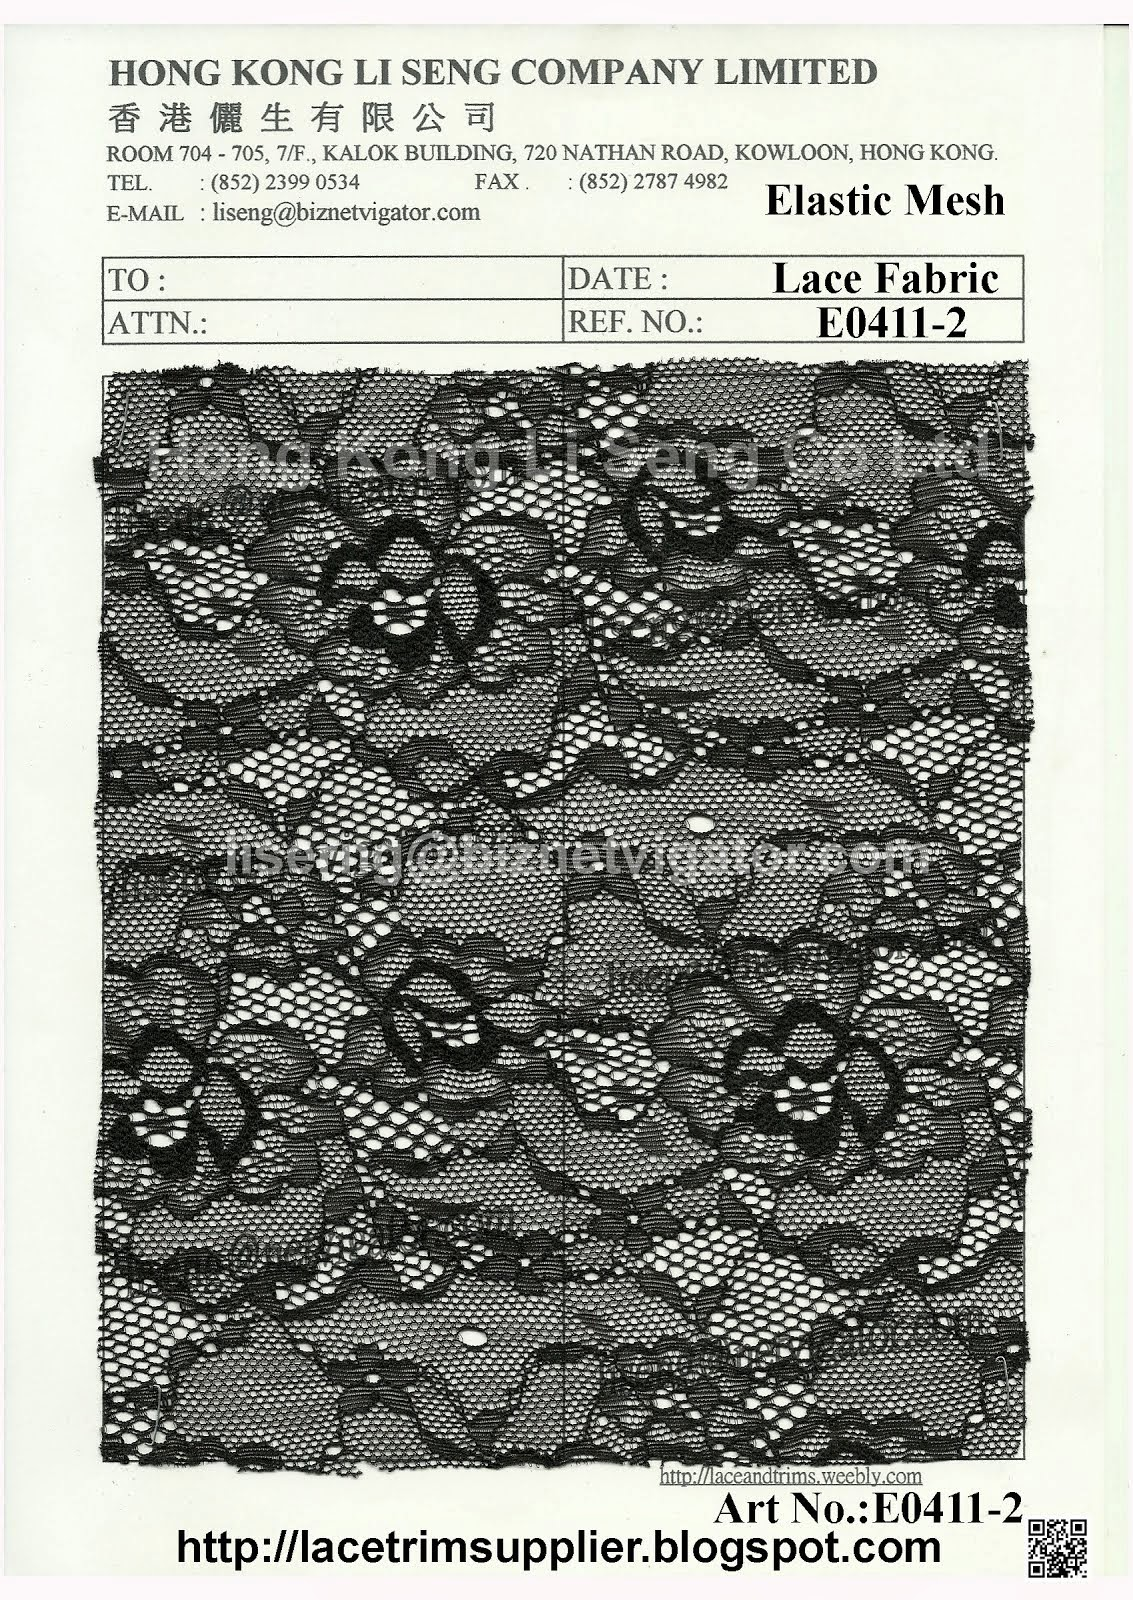 Elastic Mesh Lace Fabric Manufacturer and Supplier - Hong Kong Li Seng Co Ltd